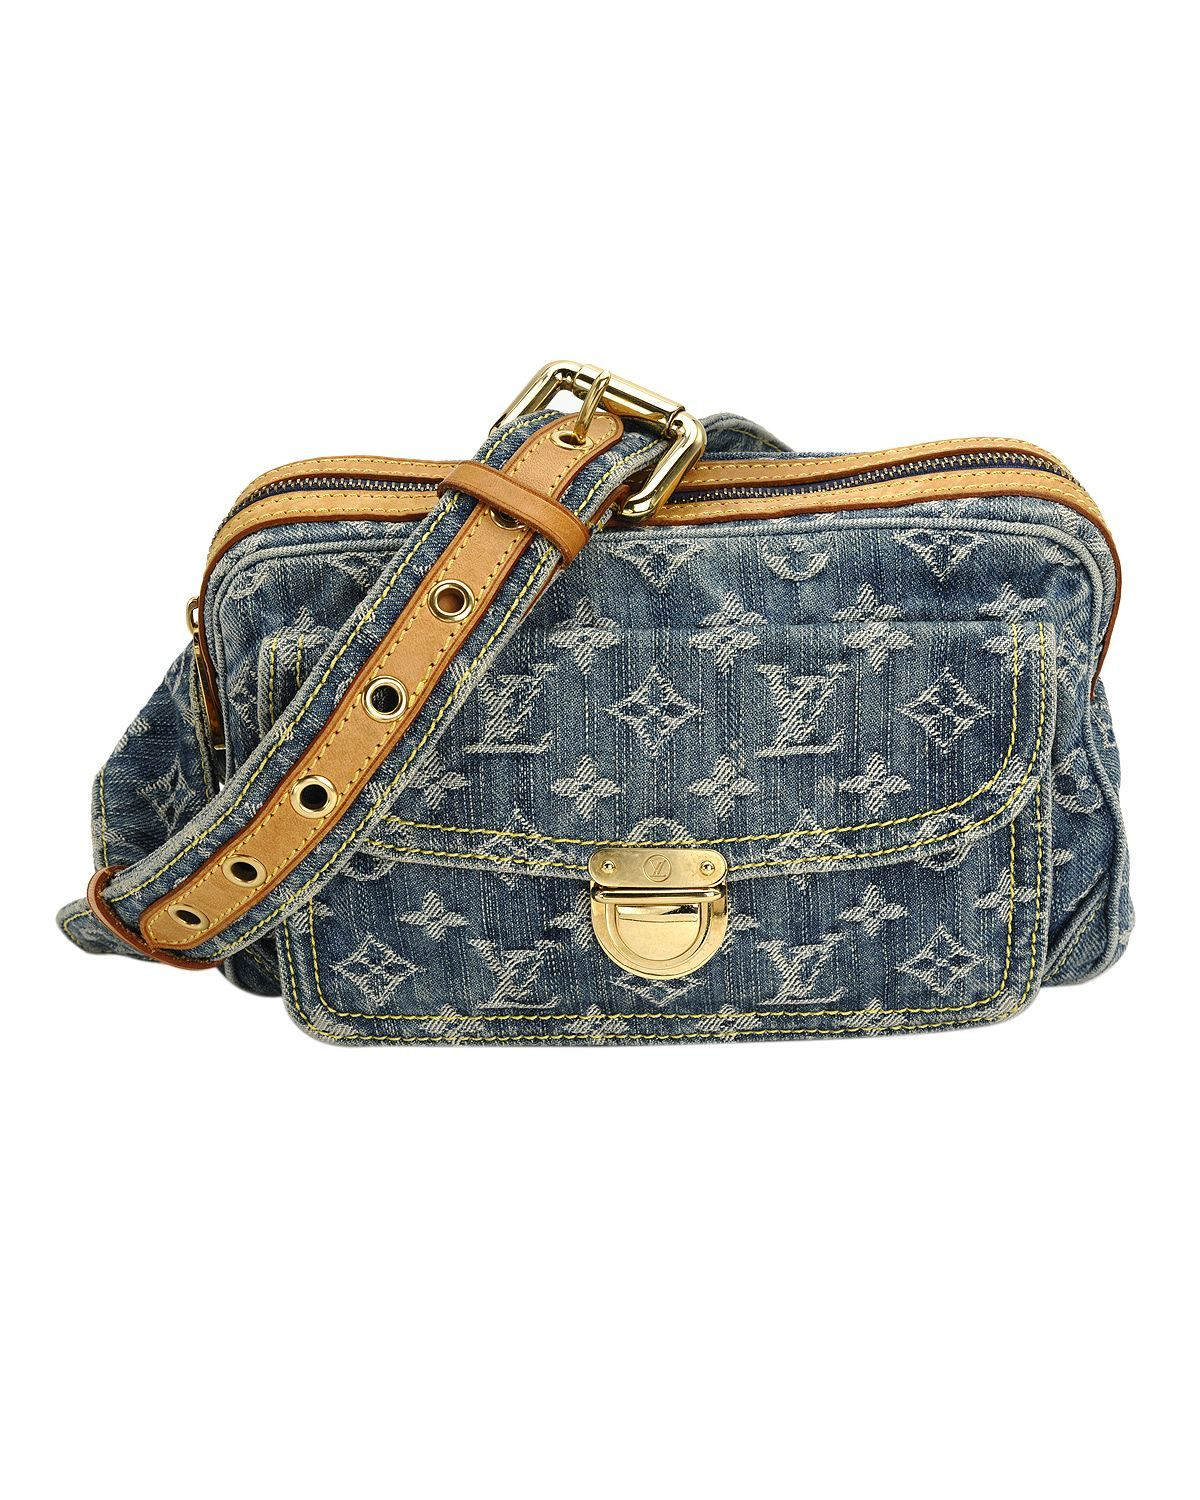 Louis Vuitton Fanny Pack For 899 At Modnique Start